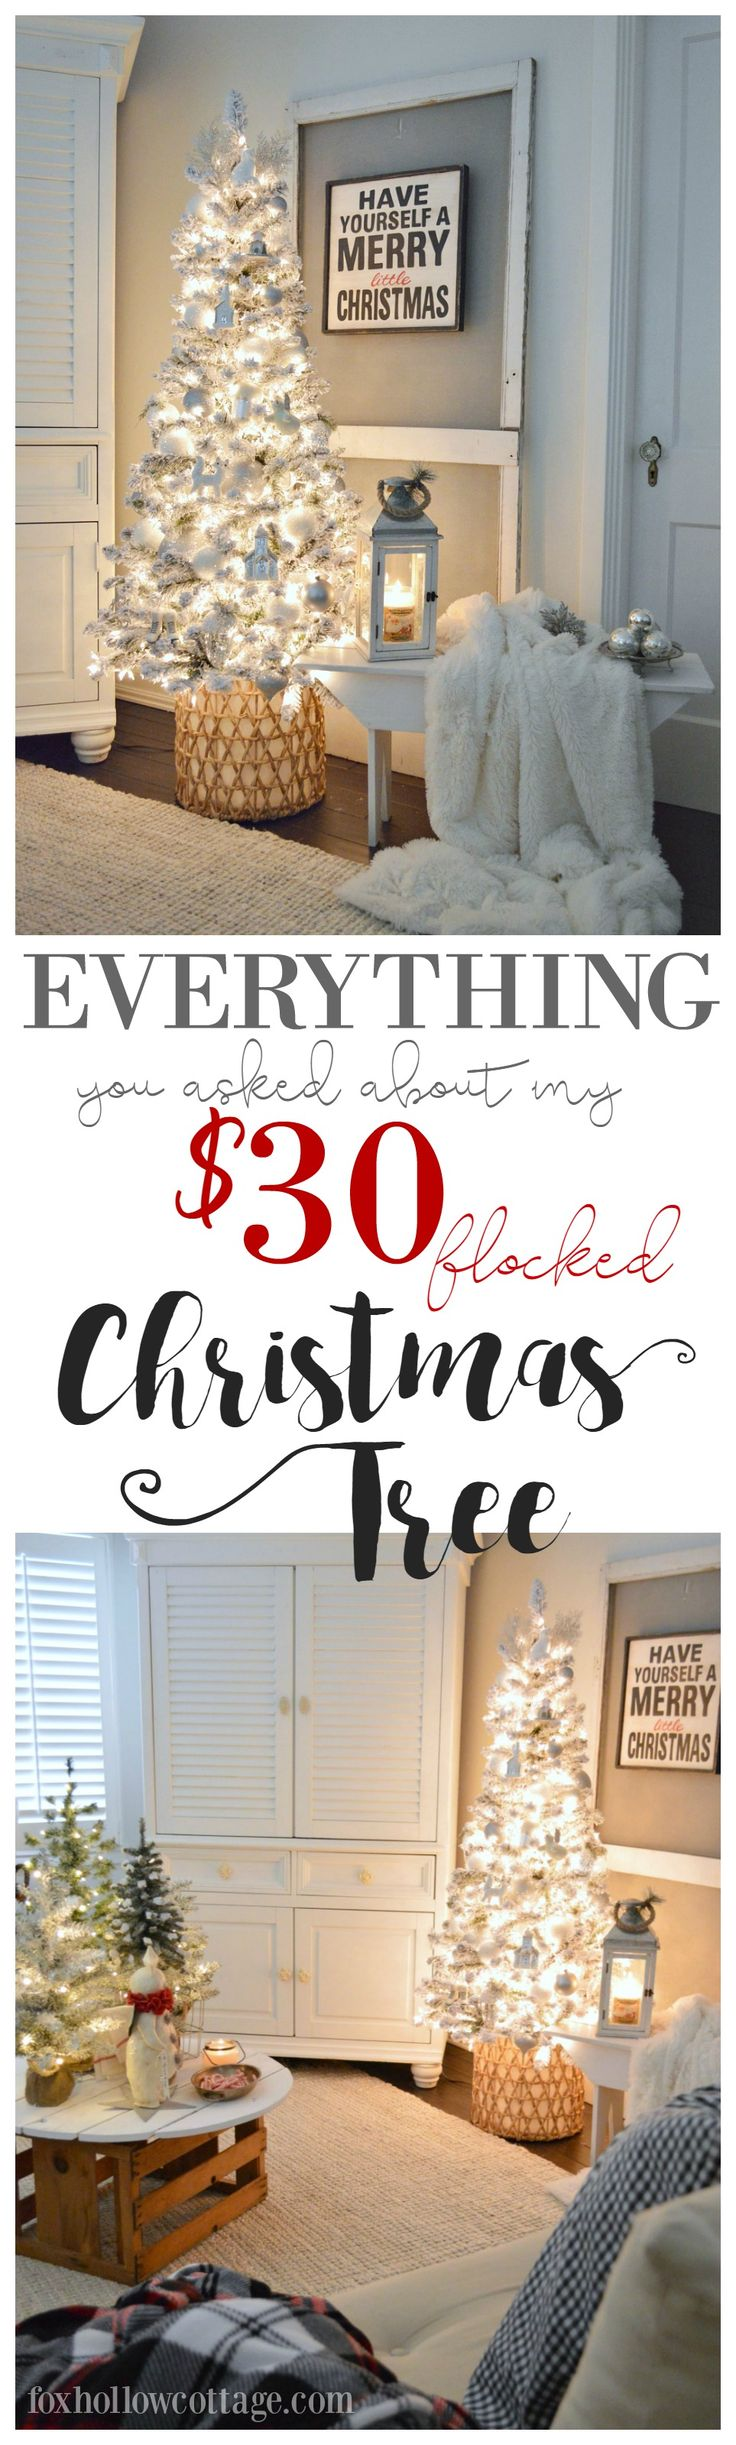 My $30 flocked Christmas tree - Where I got it, the lights I used, my basket size ( I got it at @Homegoods ), tips and everything you've all been asking about - answered. Because holidays decorating can be affordable and still be pretty! For more everyday & seasonal decorating ideas that won't leave you broke, visit foxhollowcottage.com sponsored pin